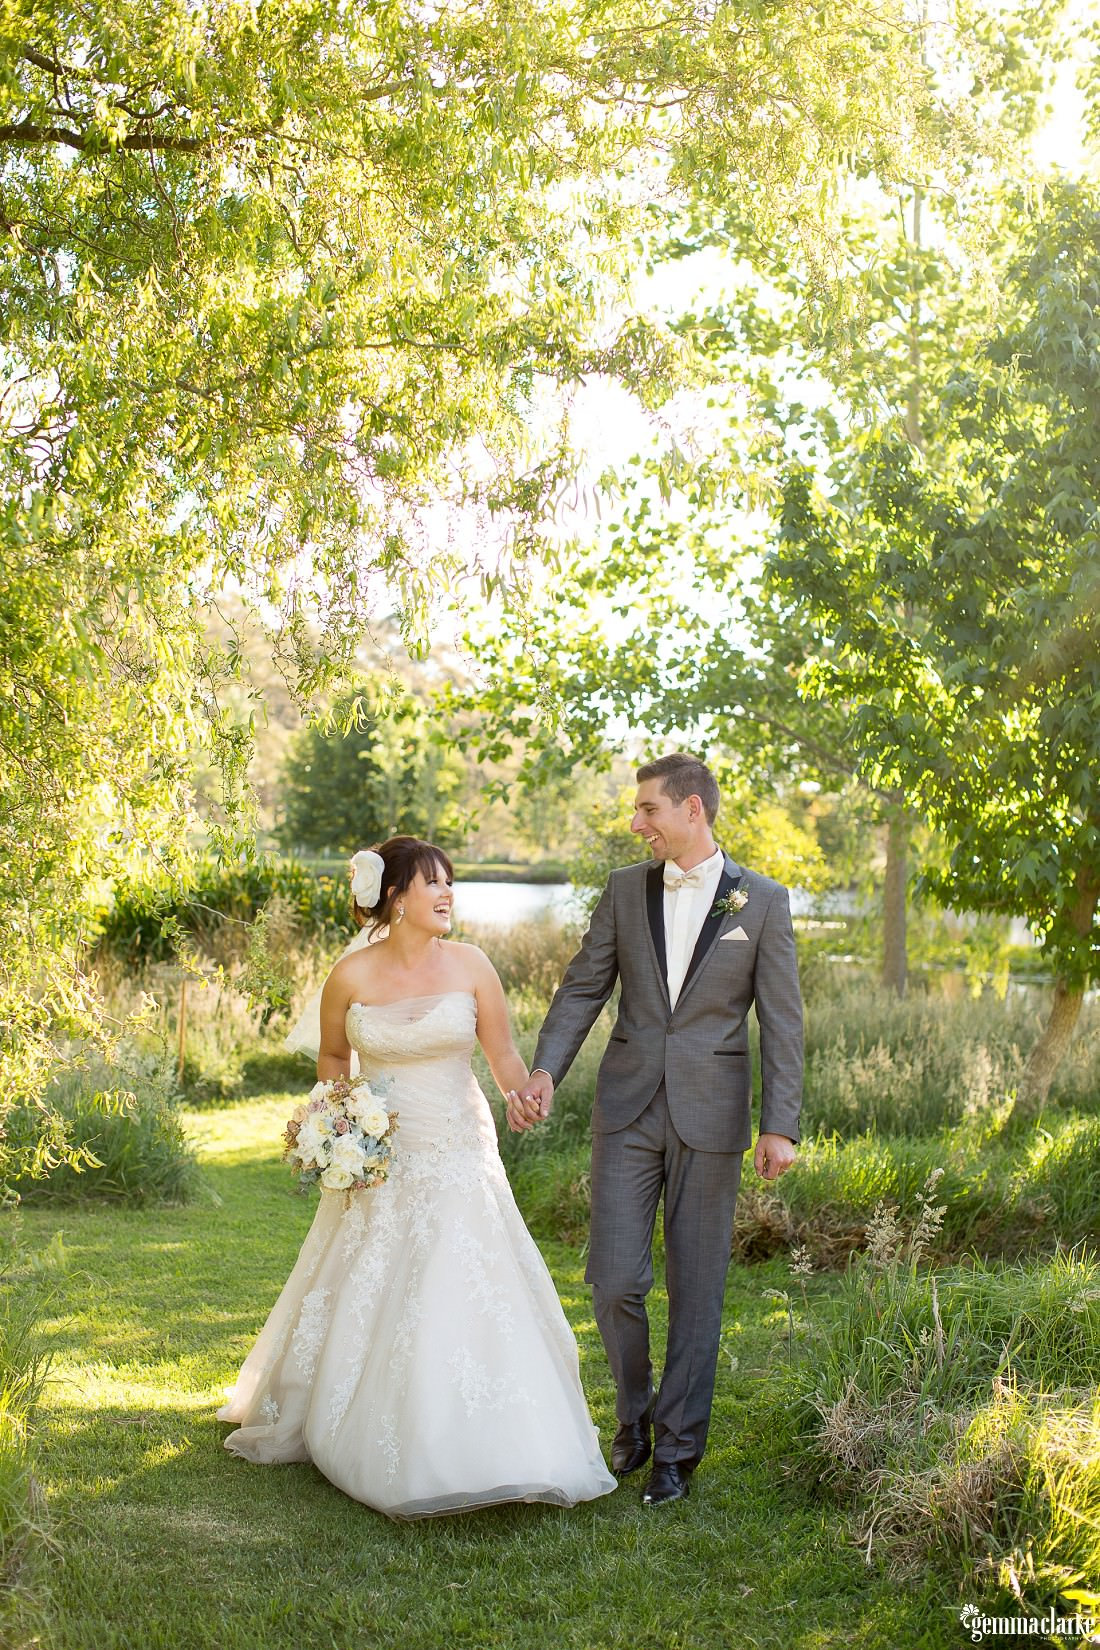 gemmaclarkephotography_mali-brae-wedding_southern-highlands-wedding_tahnae-and-james_0075